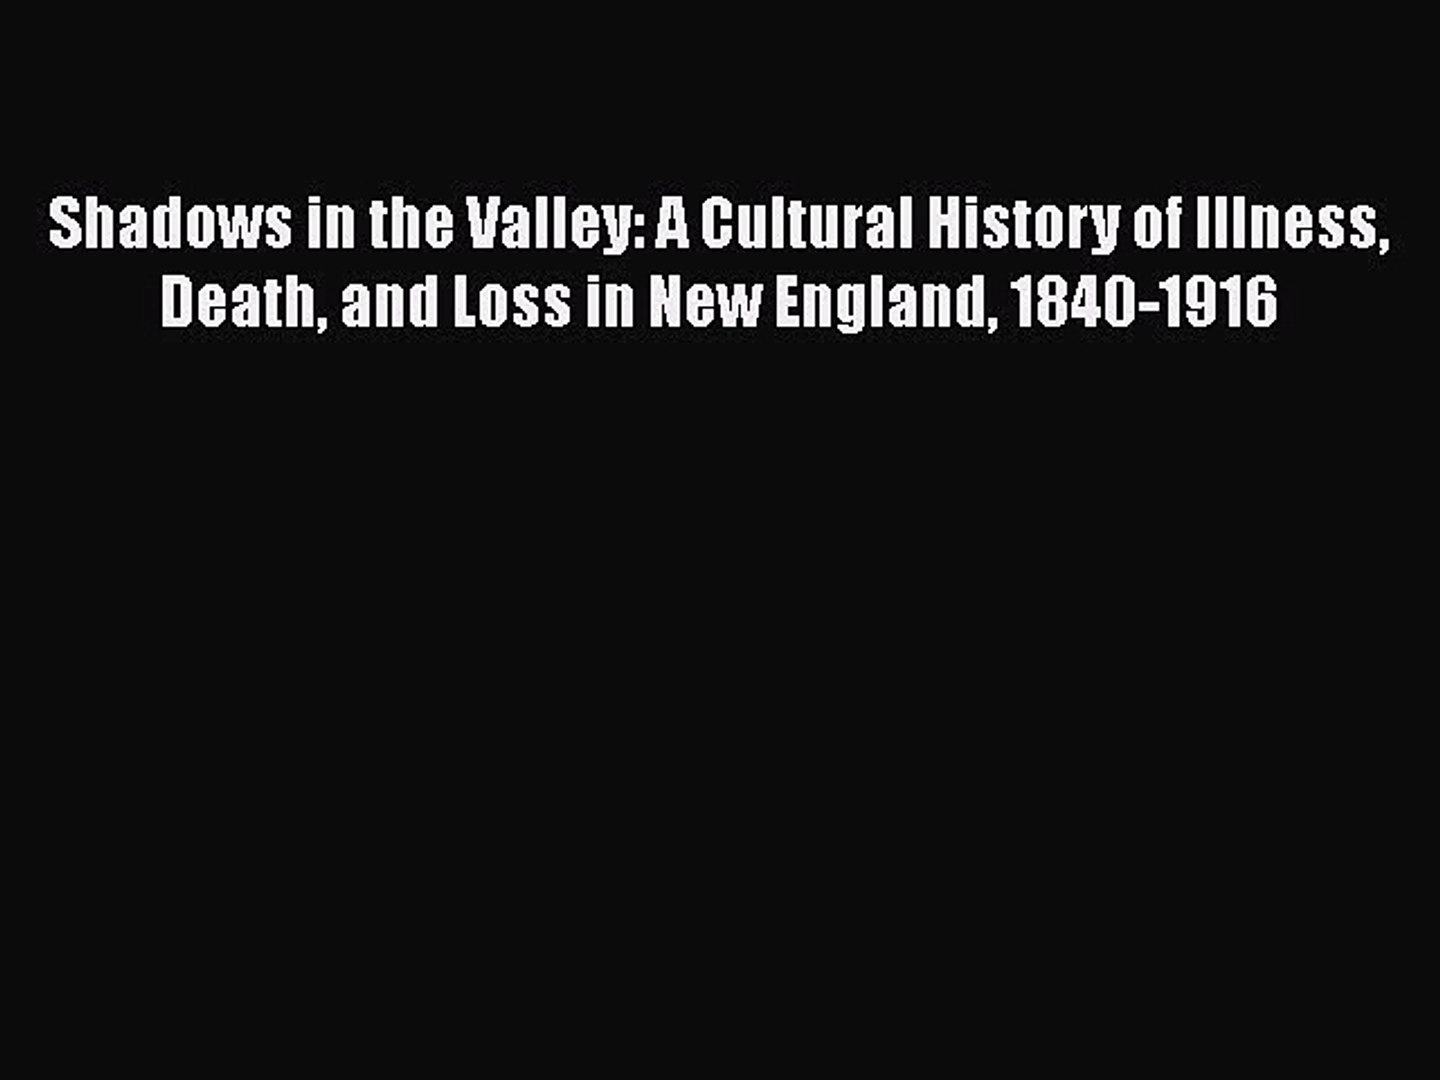 [Read] Shadows in the Valley: A Cultural History of Illness Death and Loss in New England 1840-1916